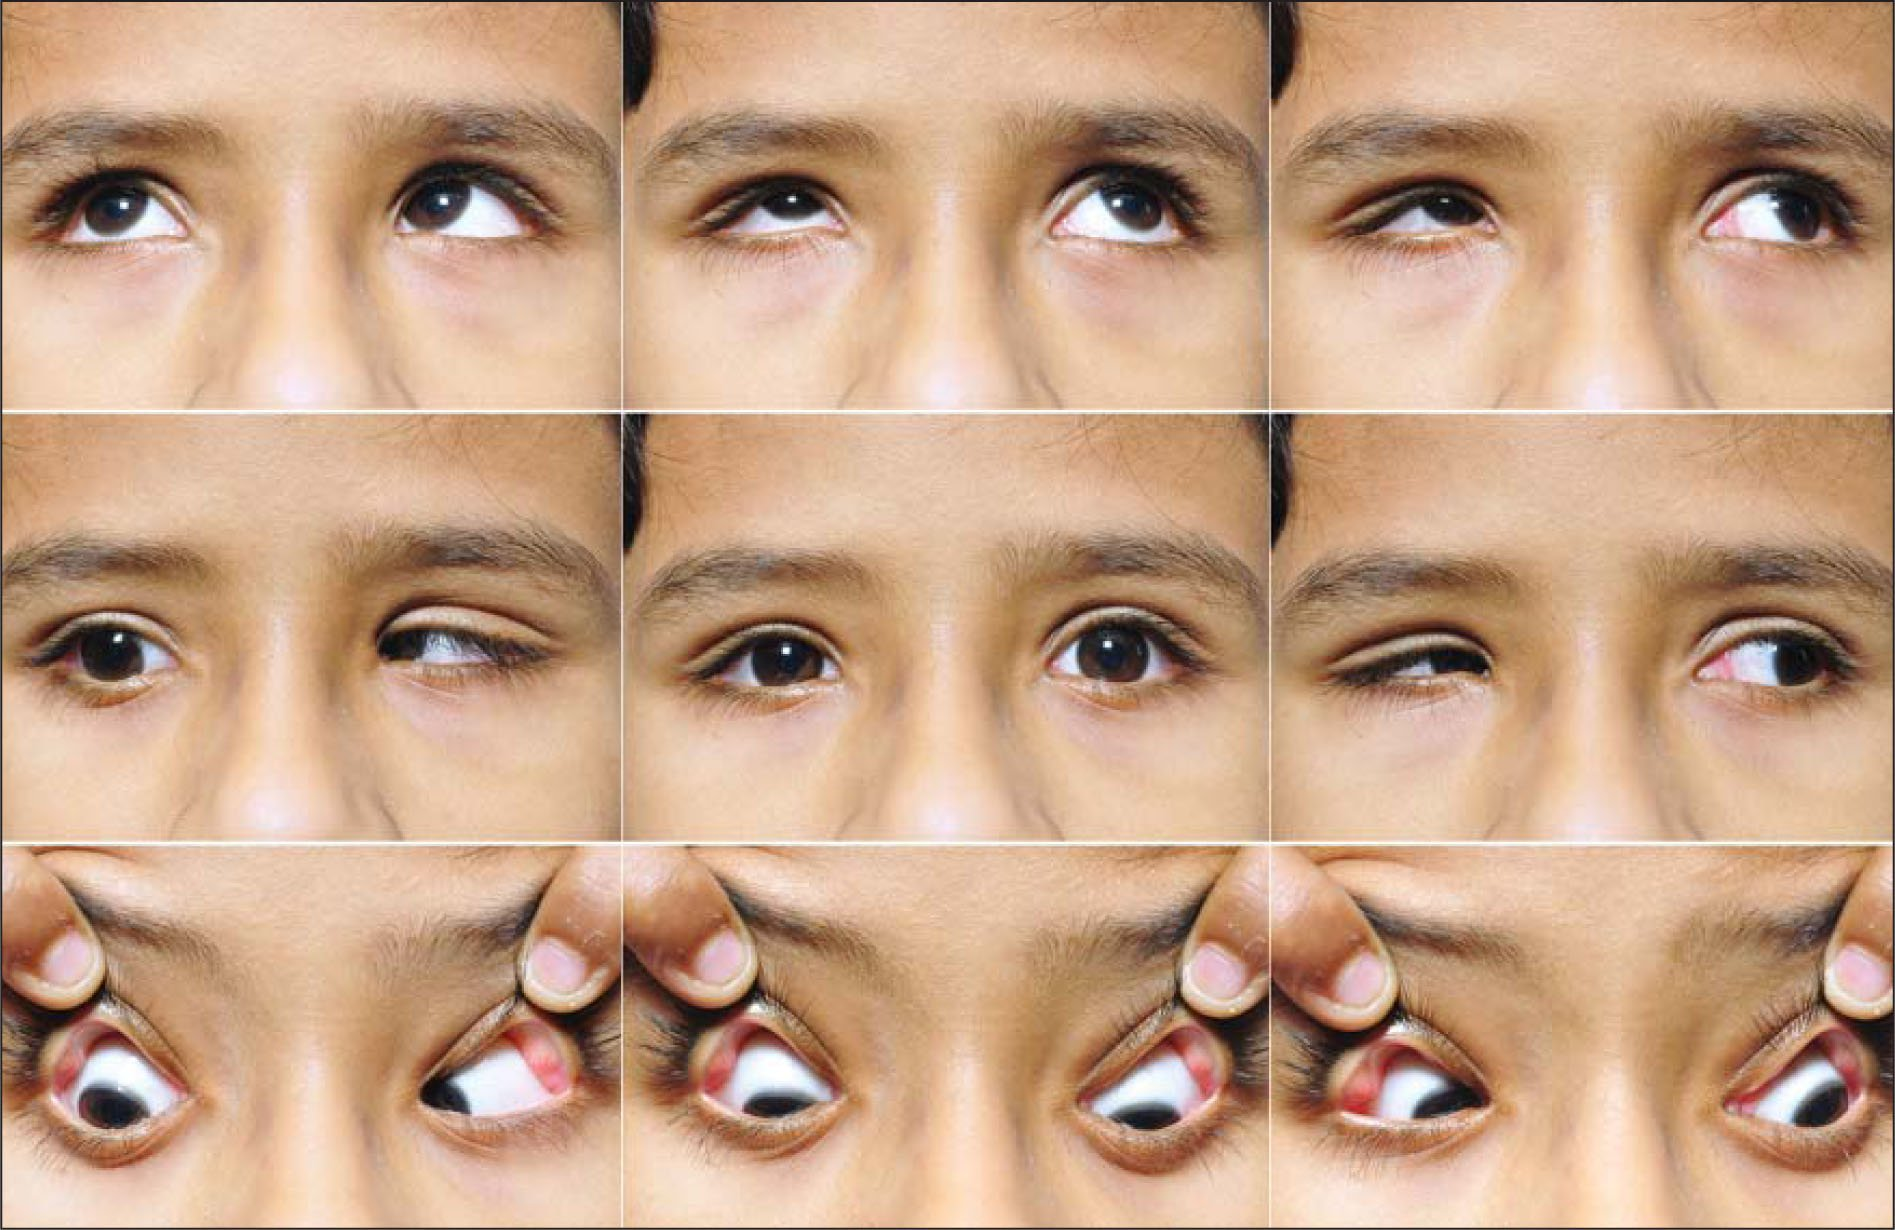 Nine-gaze photographs showing typical manifestations of Duane retraction syndrome (type 1) and a near normal-sized eyeball in the right eye.